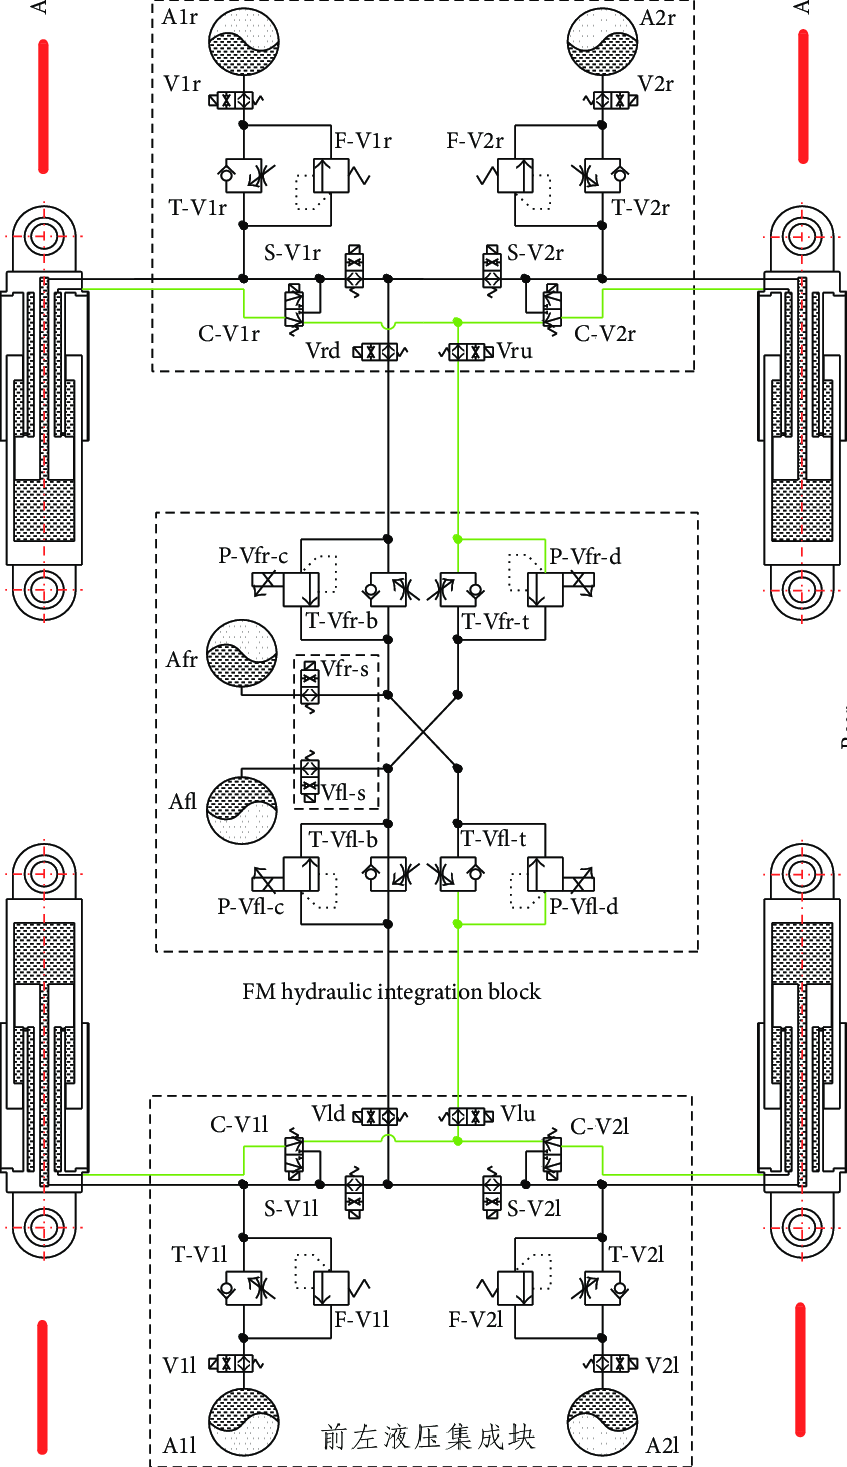 hight resolution of schematic of hydraulic system design